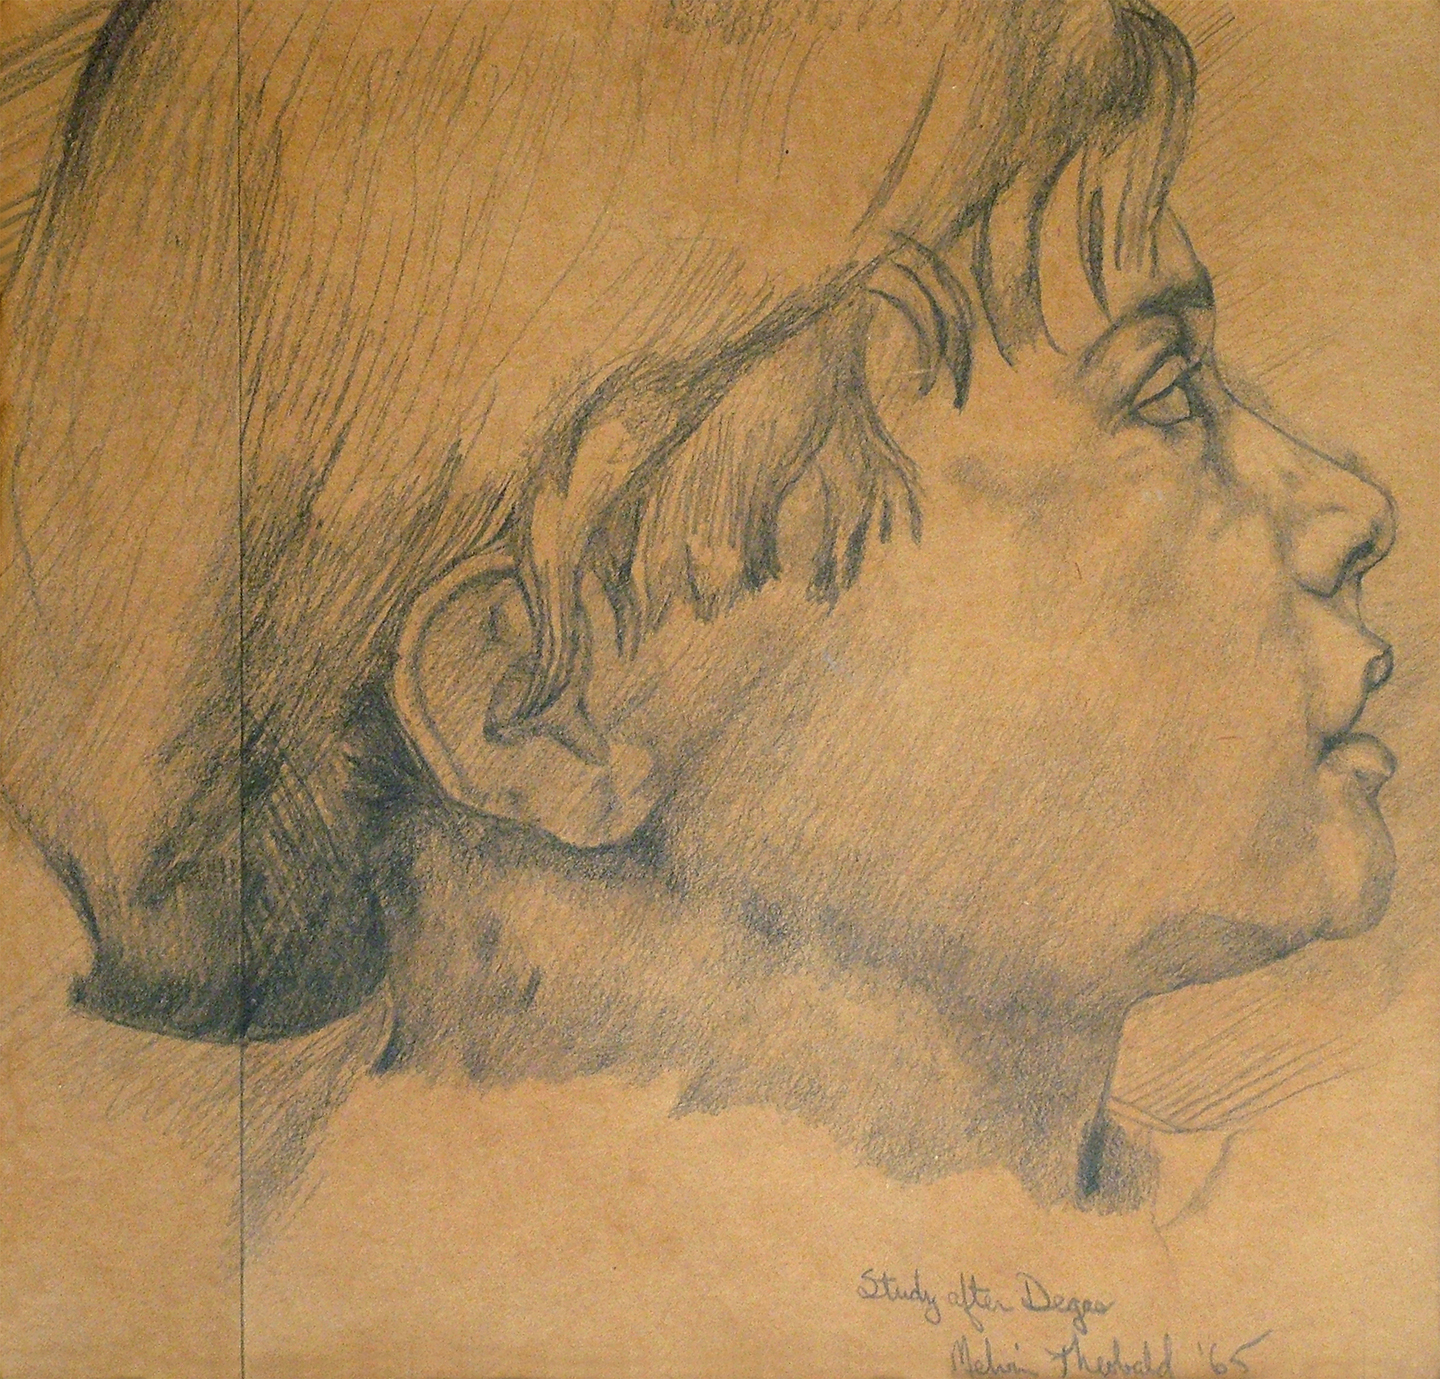 "Study after Degas, 1965  9"" x 9.5"" Pencil on craft paper"